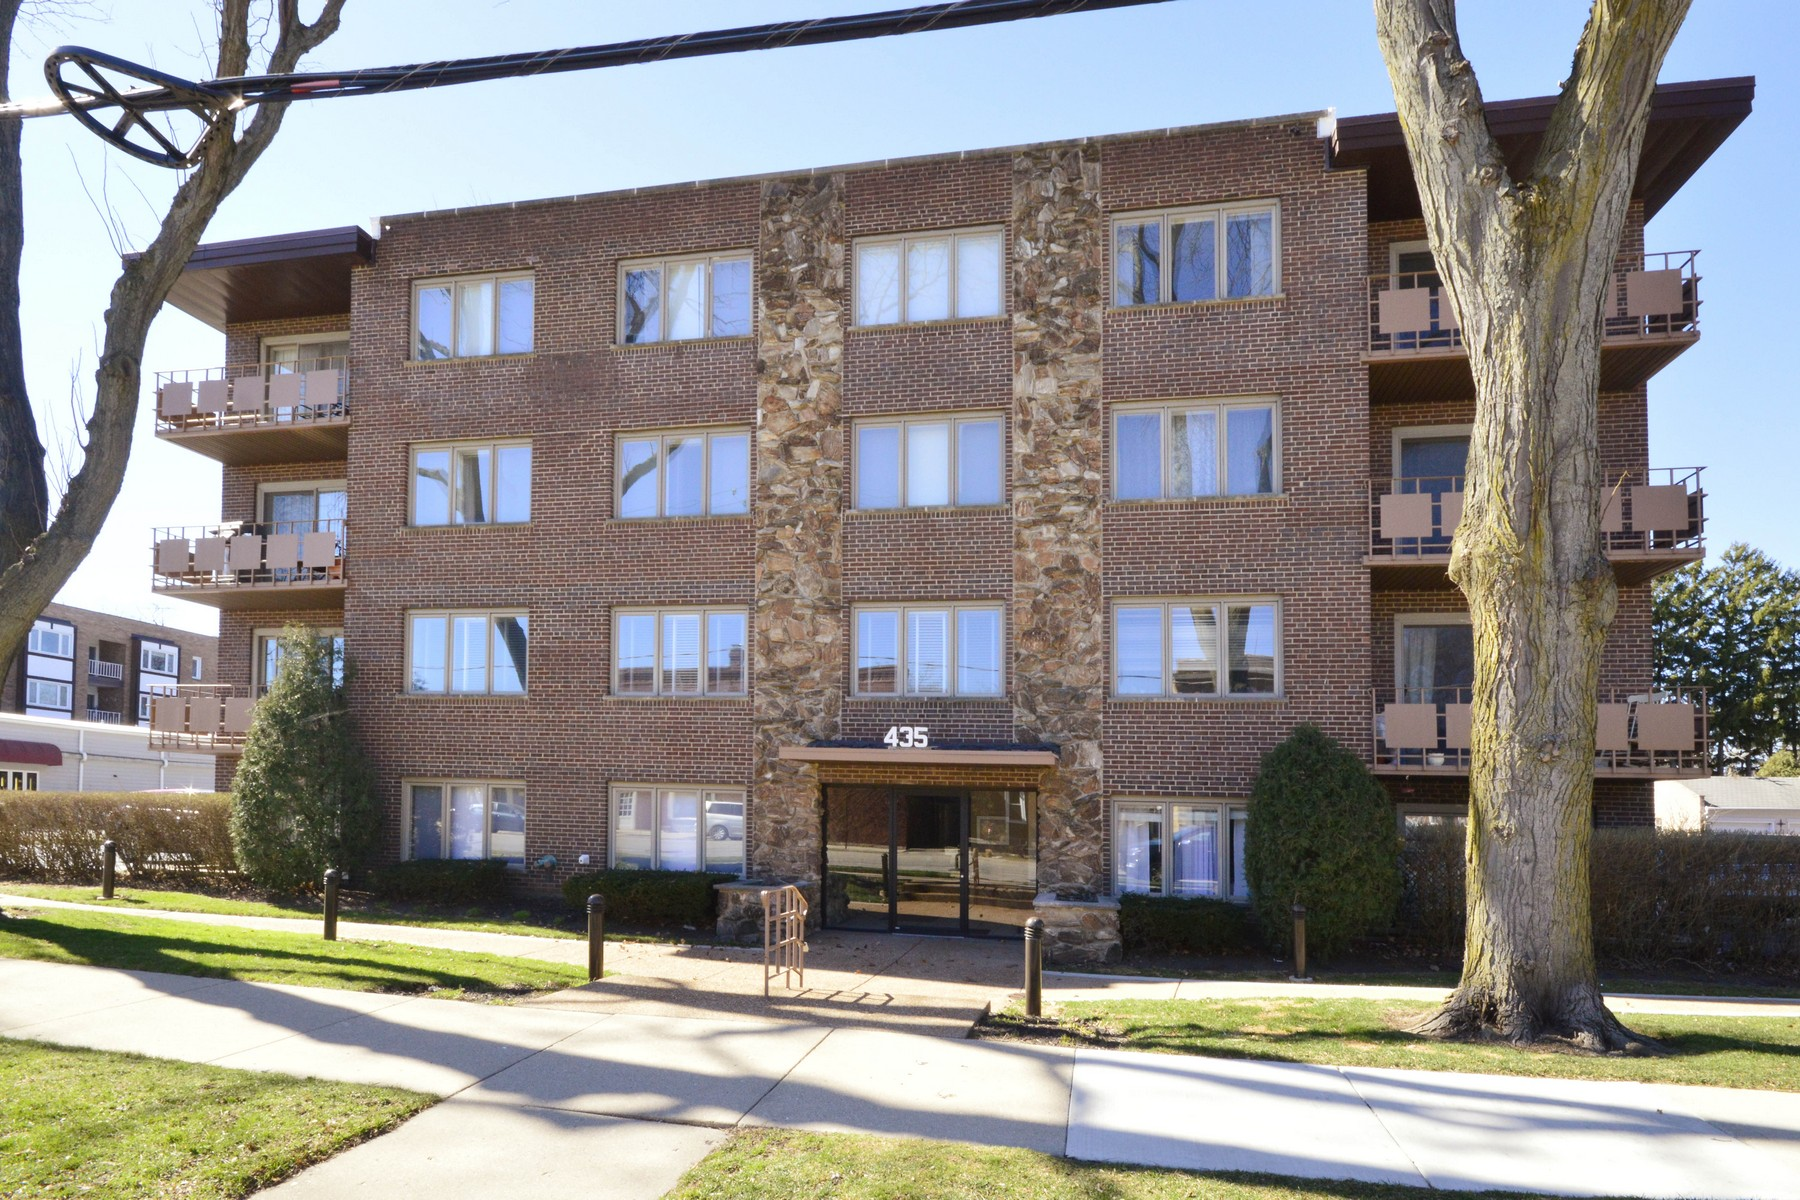 Condominium for Sale at Gorgeous Light-Filled Corner Unit 435 Ridge Road Unit 406 Wilmette, Illinois 60091 United States